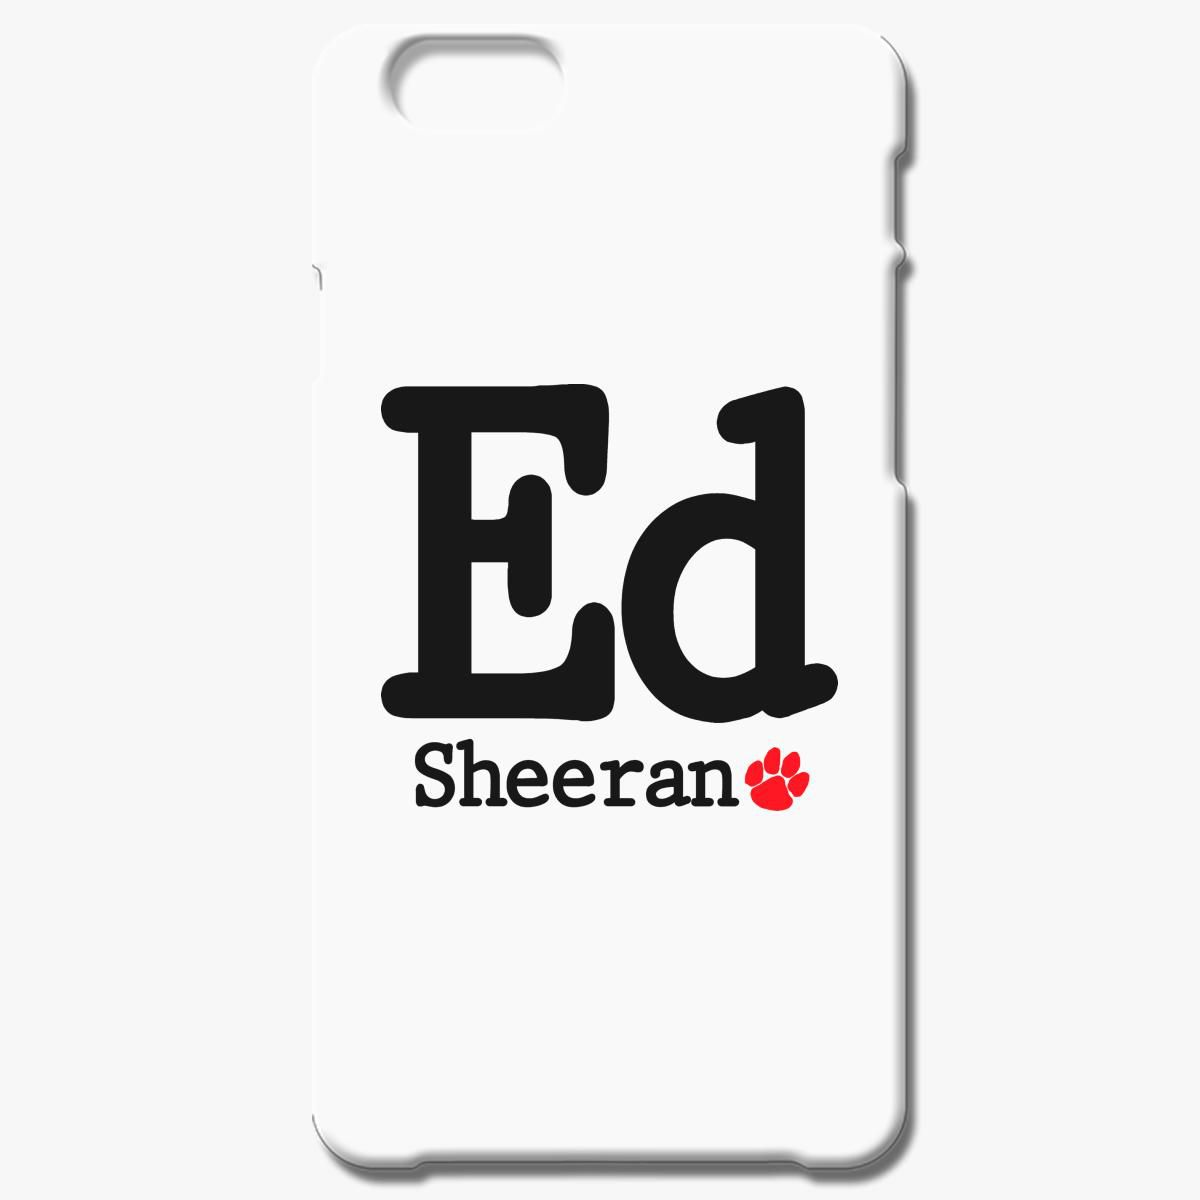 Ed Sheeran Iphone 7 Plus Case